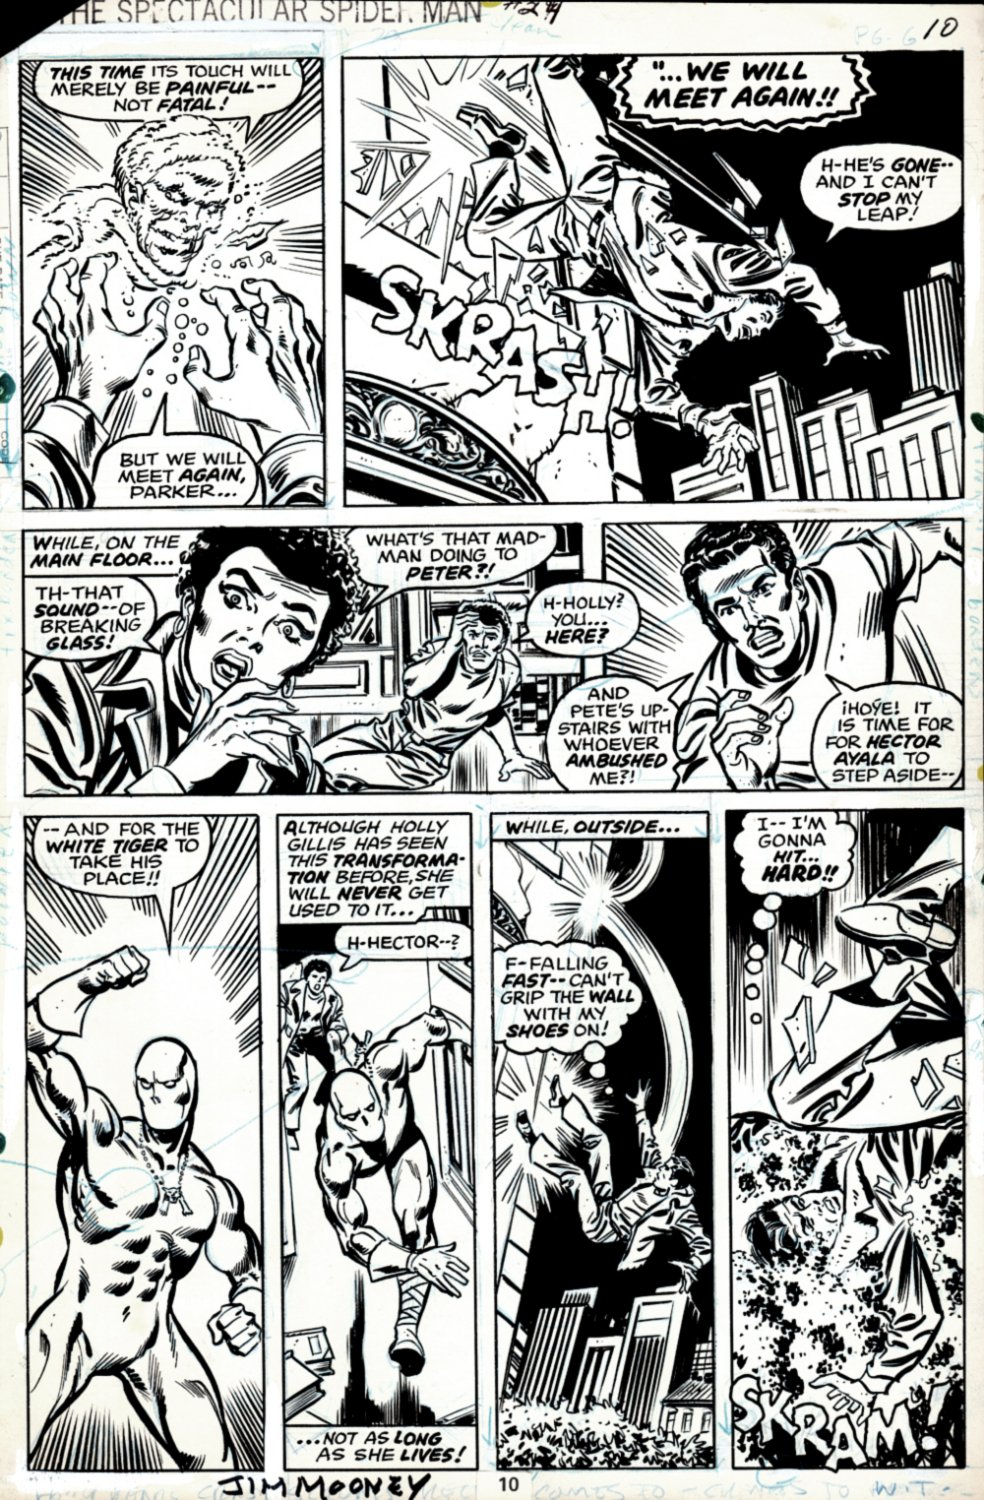 Spectacular Spider-Man #29 p 10 (SOLD LIVE ON THE ROMITAMAN ART DROP PODCAST ON 10-9-2021)